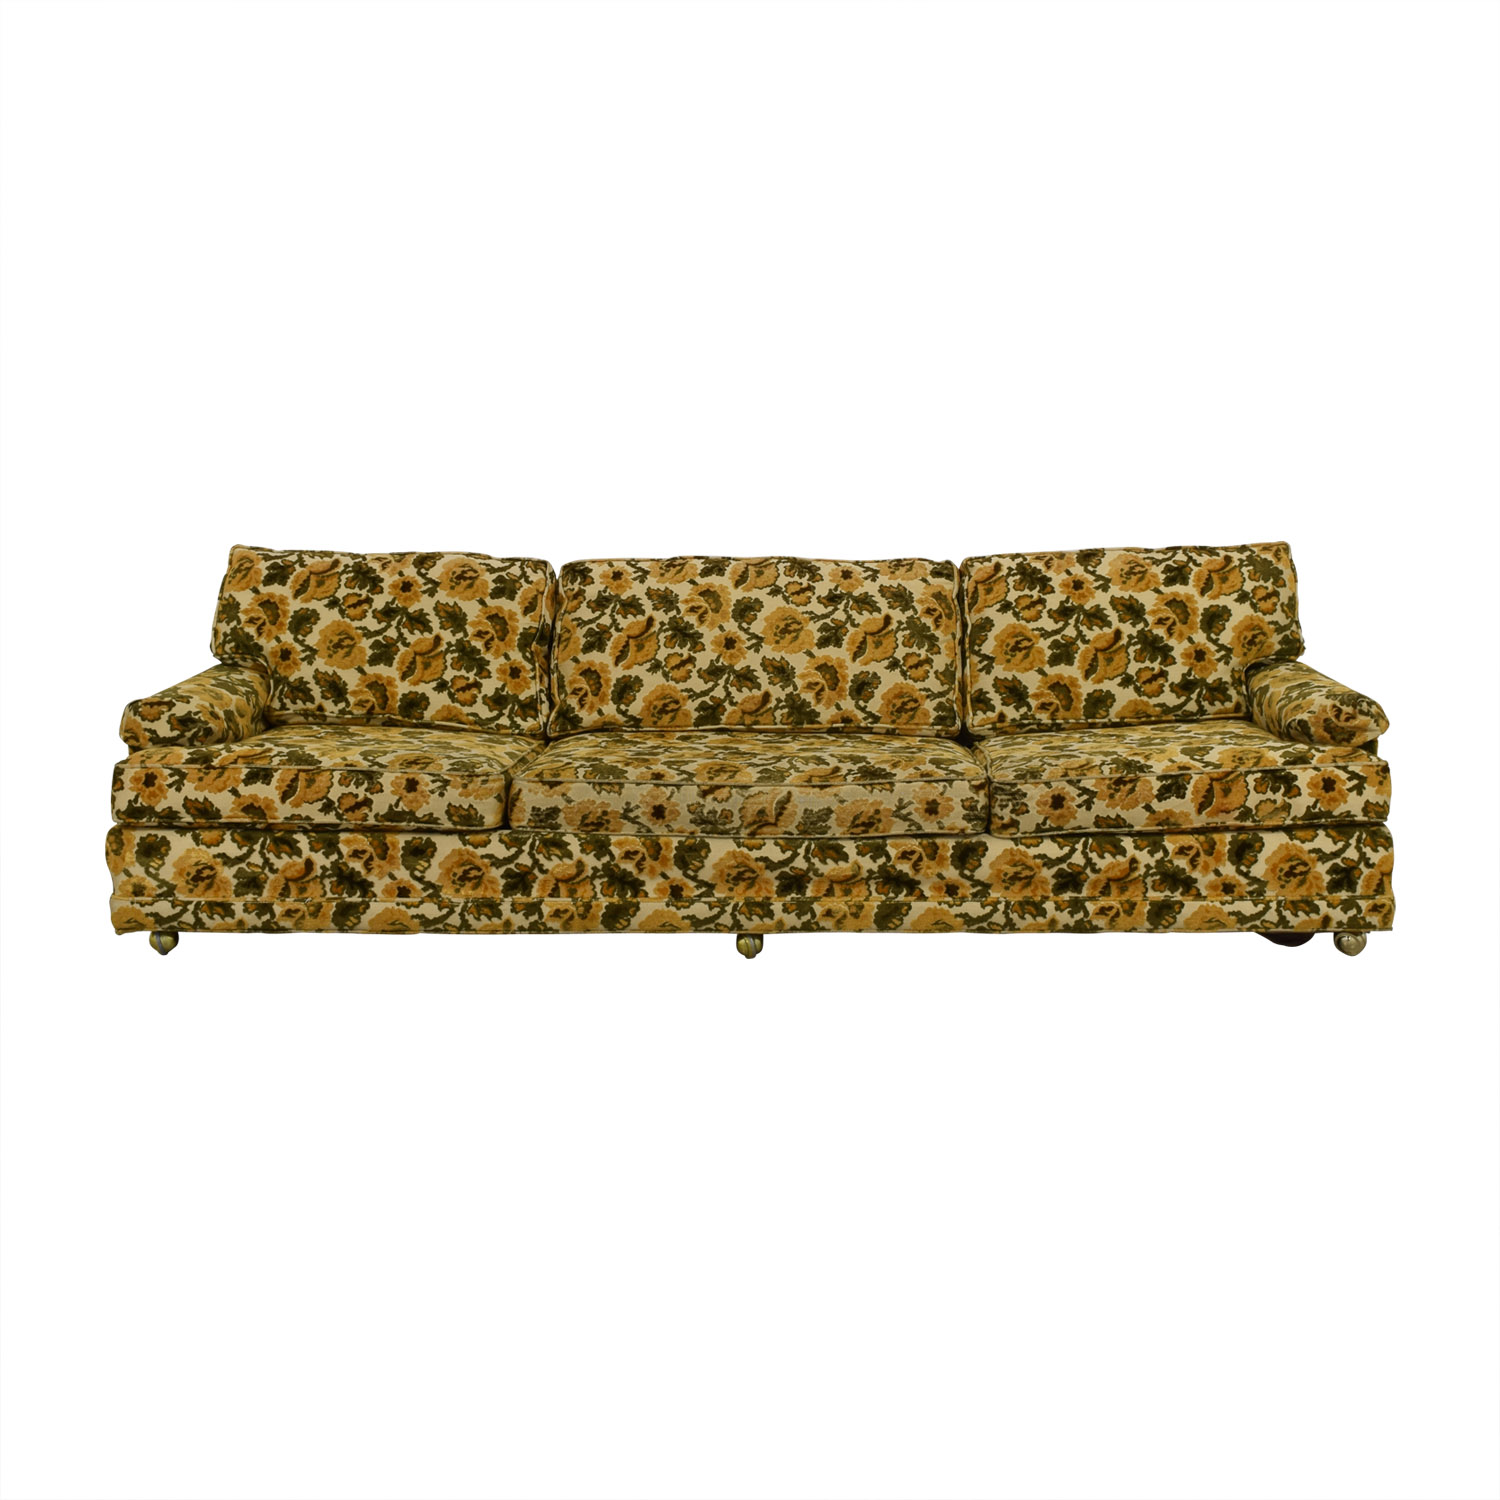 Karpen Furniture Karpen Furniture Mid-Century Yellow Floral Three-Cushion Sofa Sofas